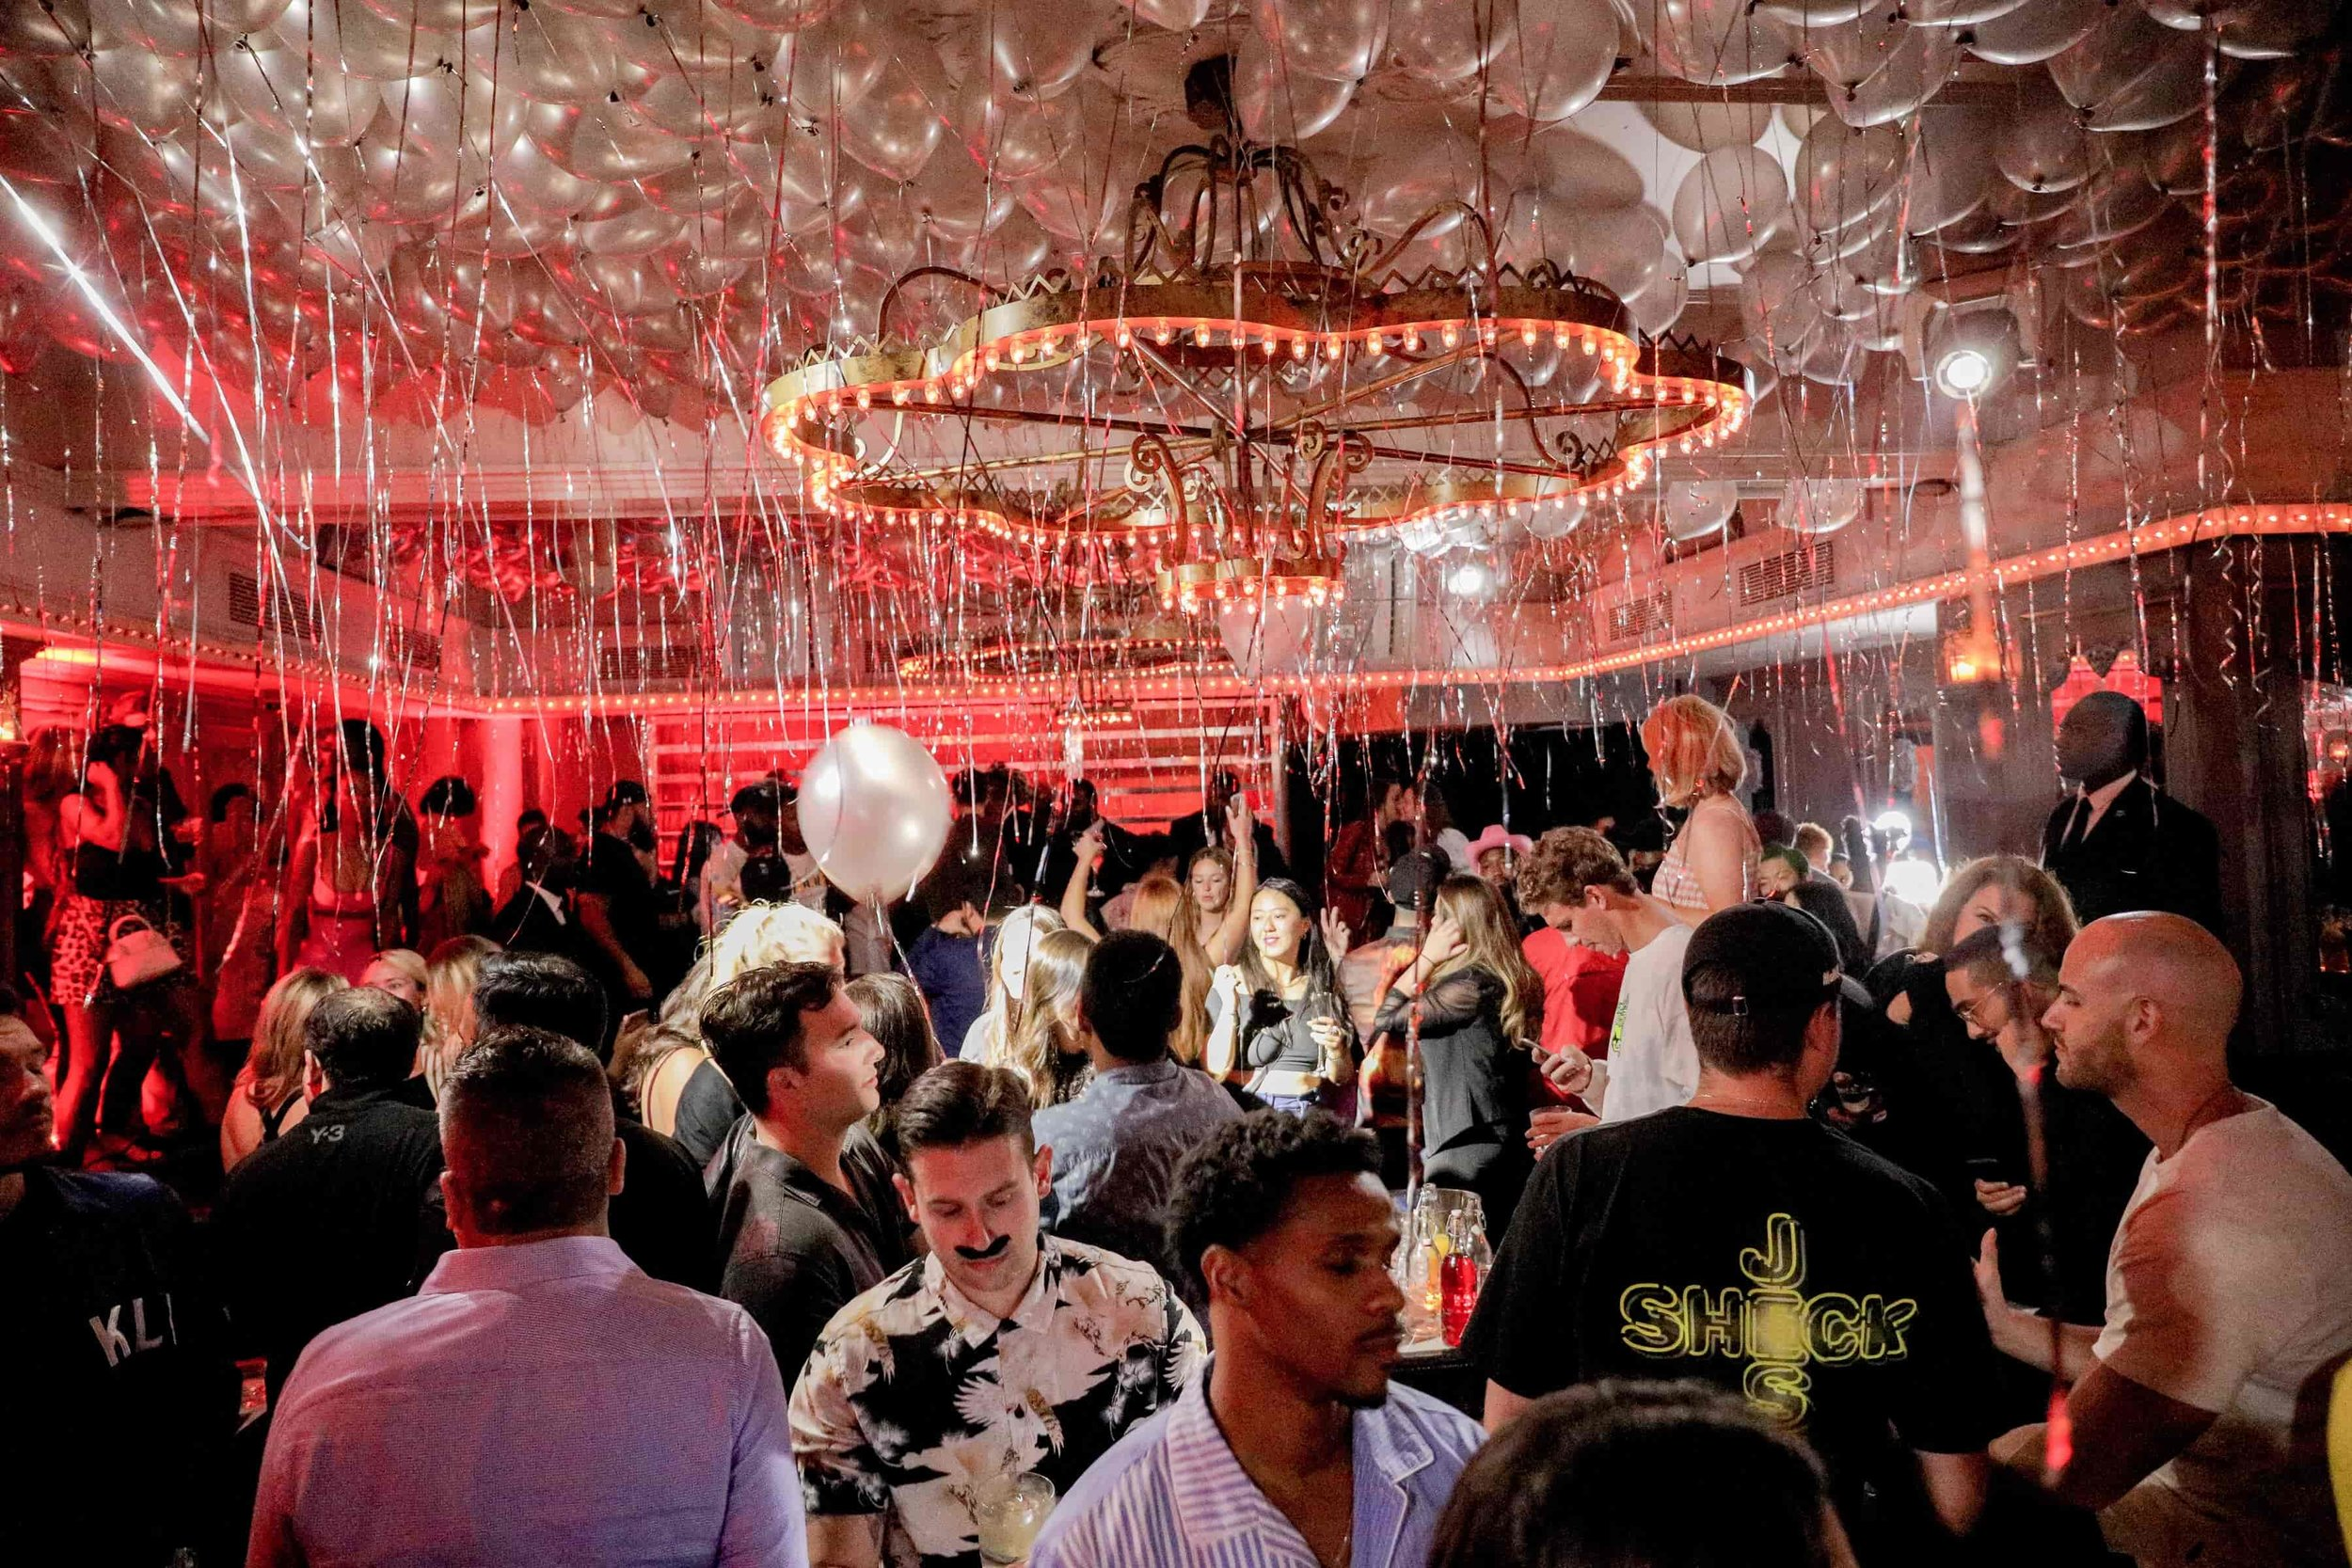 COLUMBIA RECORDS OFFICIAL 2019 VMA AFTER PARTY- Up&DOWN NYC - Featured Corporate Event